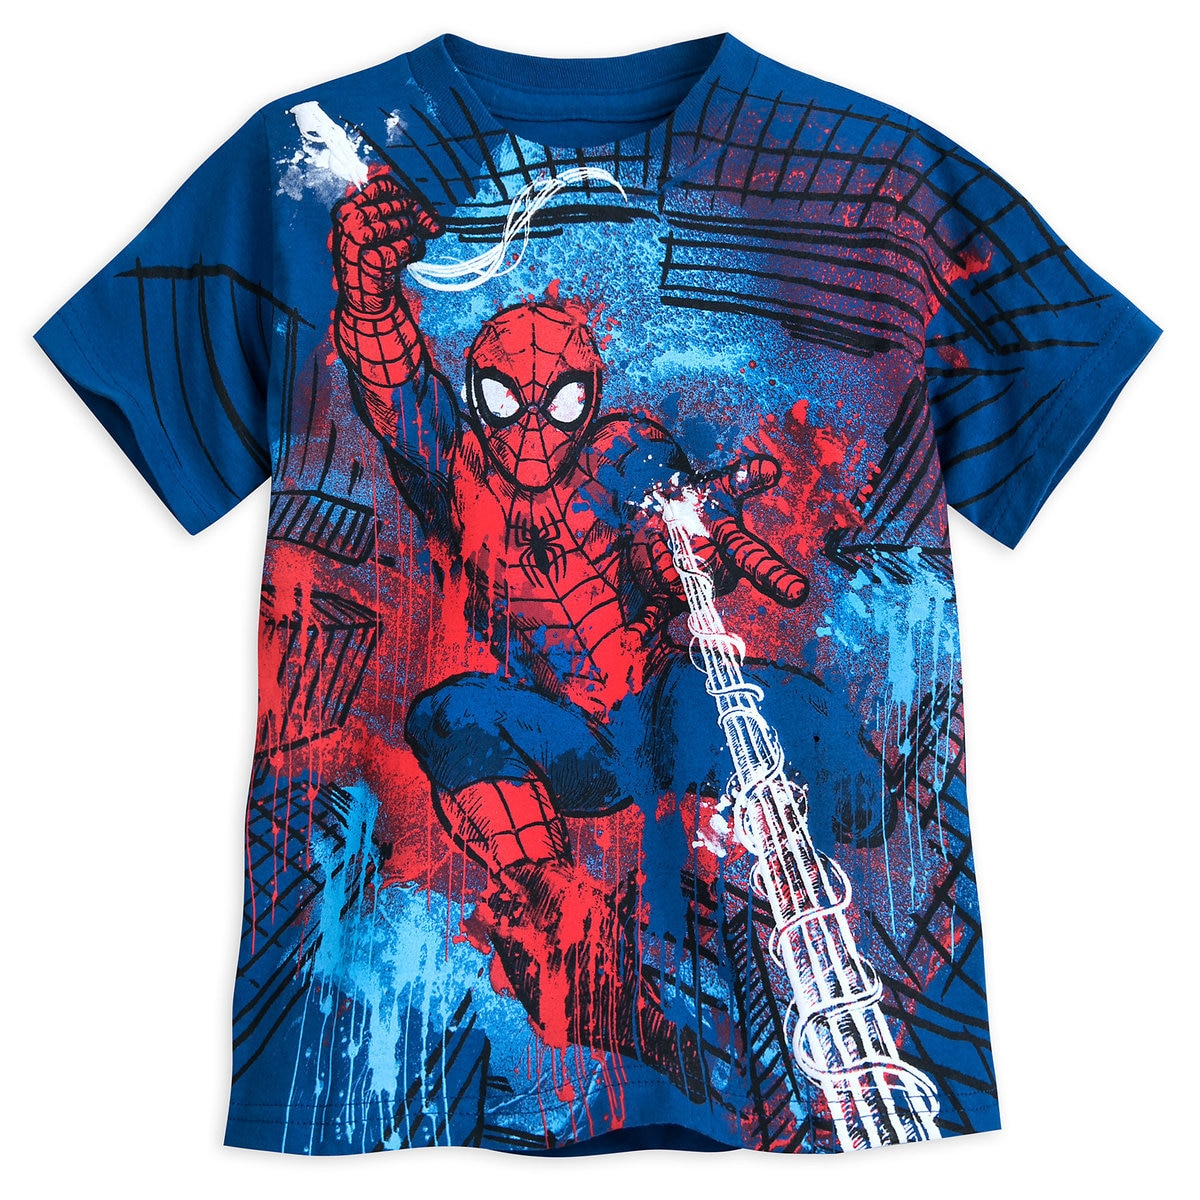 3565c67a Product Image of Spider-Man T-Shirt for Boys # 1